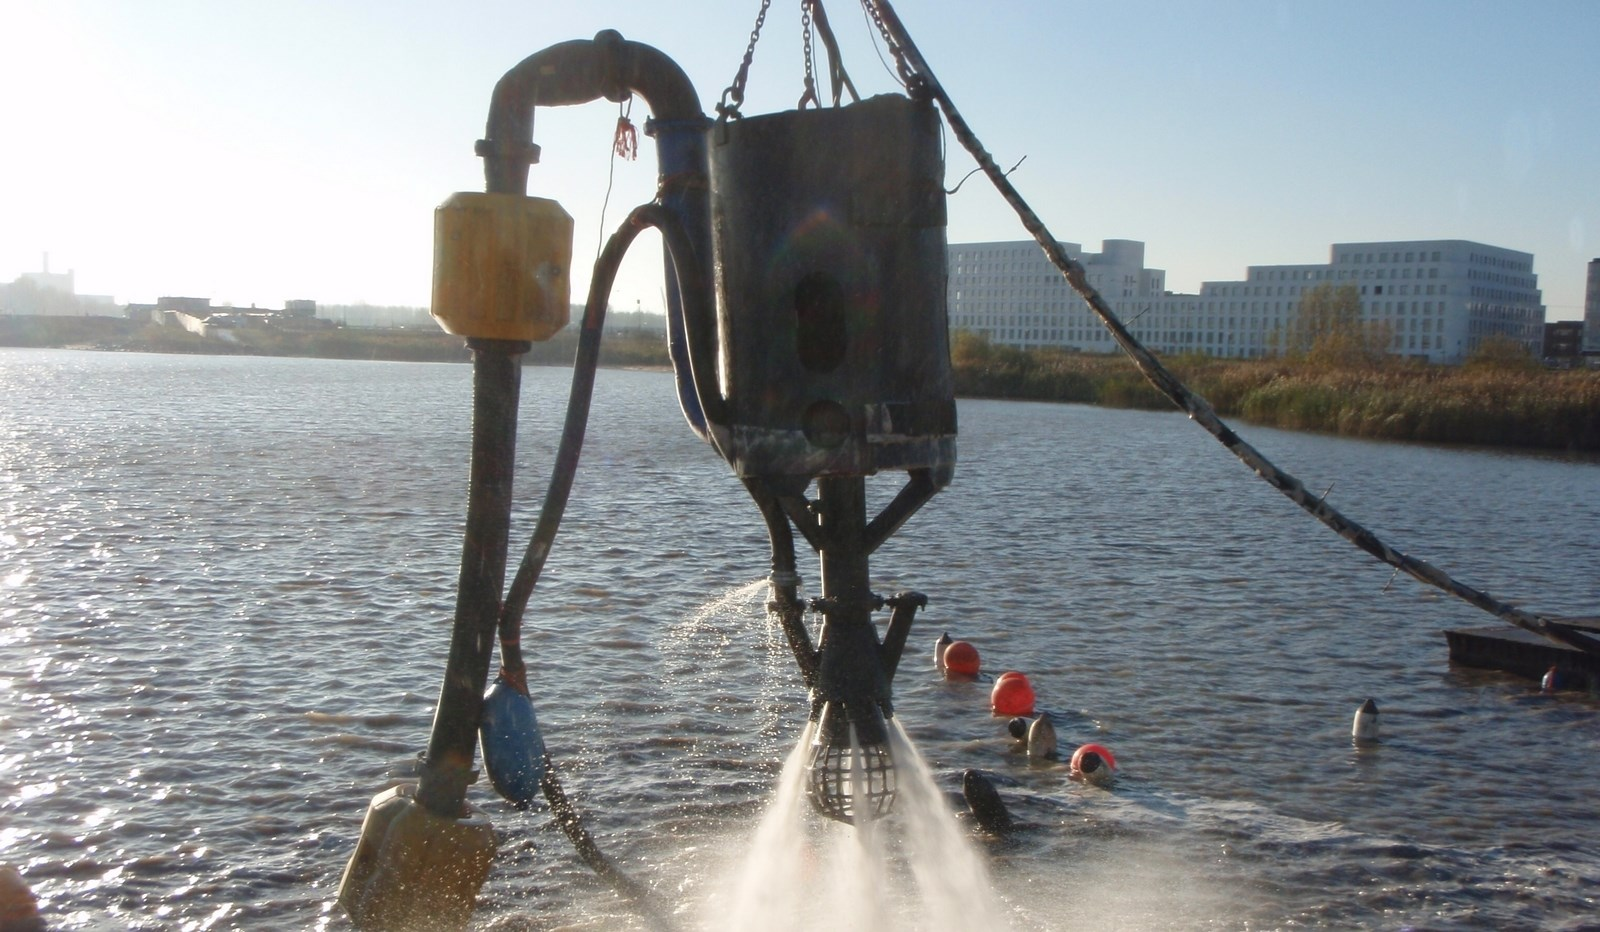 DOP Submersible Dredge Pump 250 - Hydraulically driven submersible